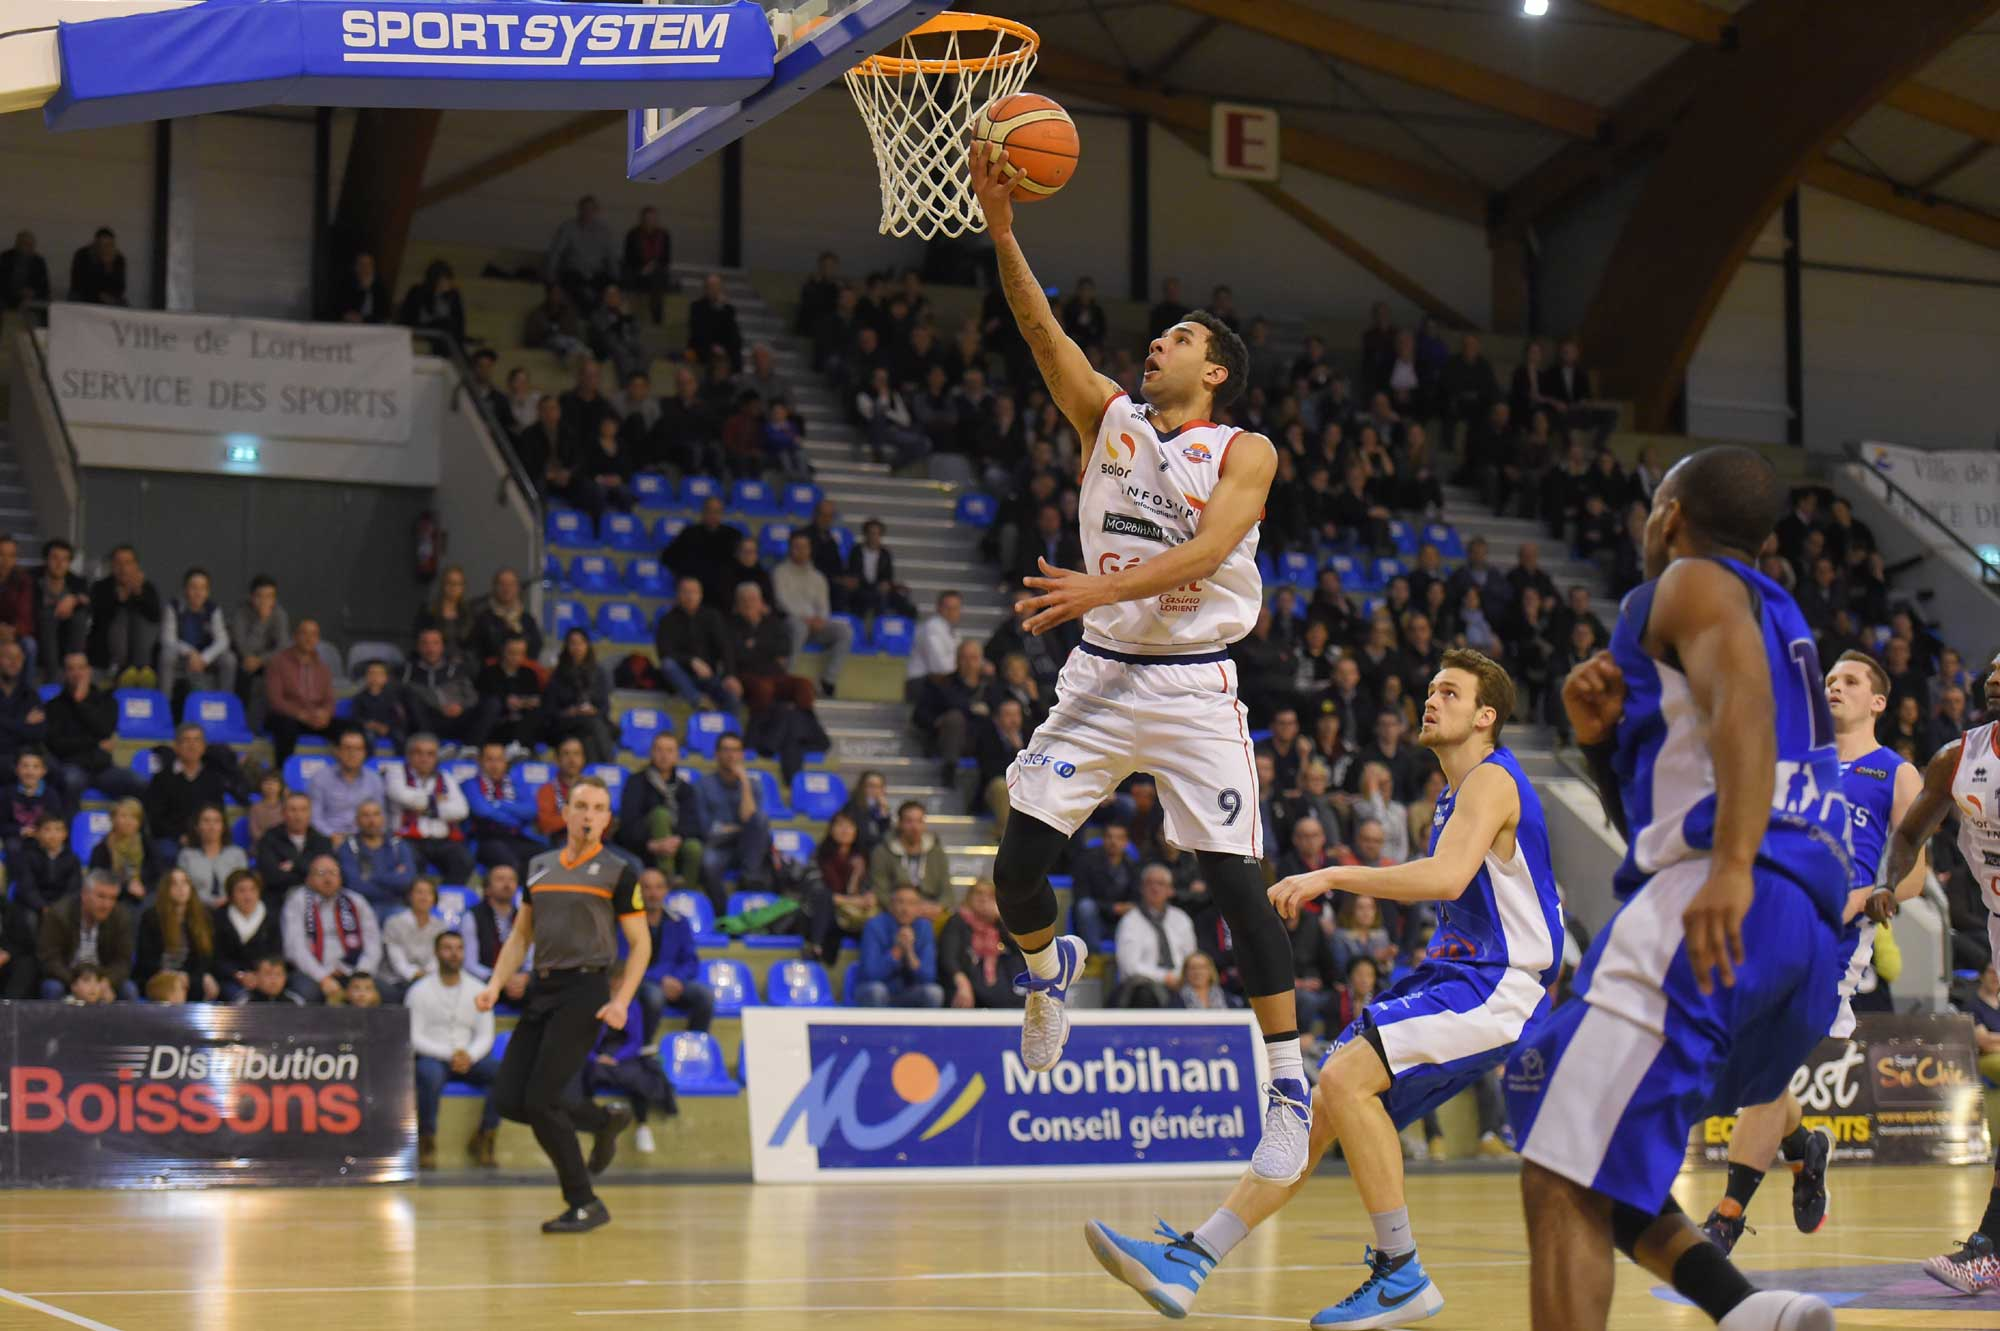 CEP Lorient Basketball - image Olivier Poulain